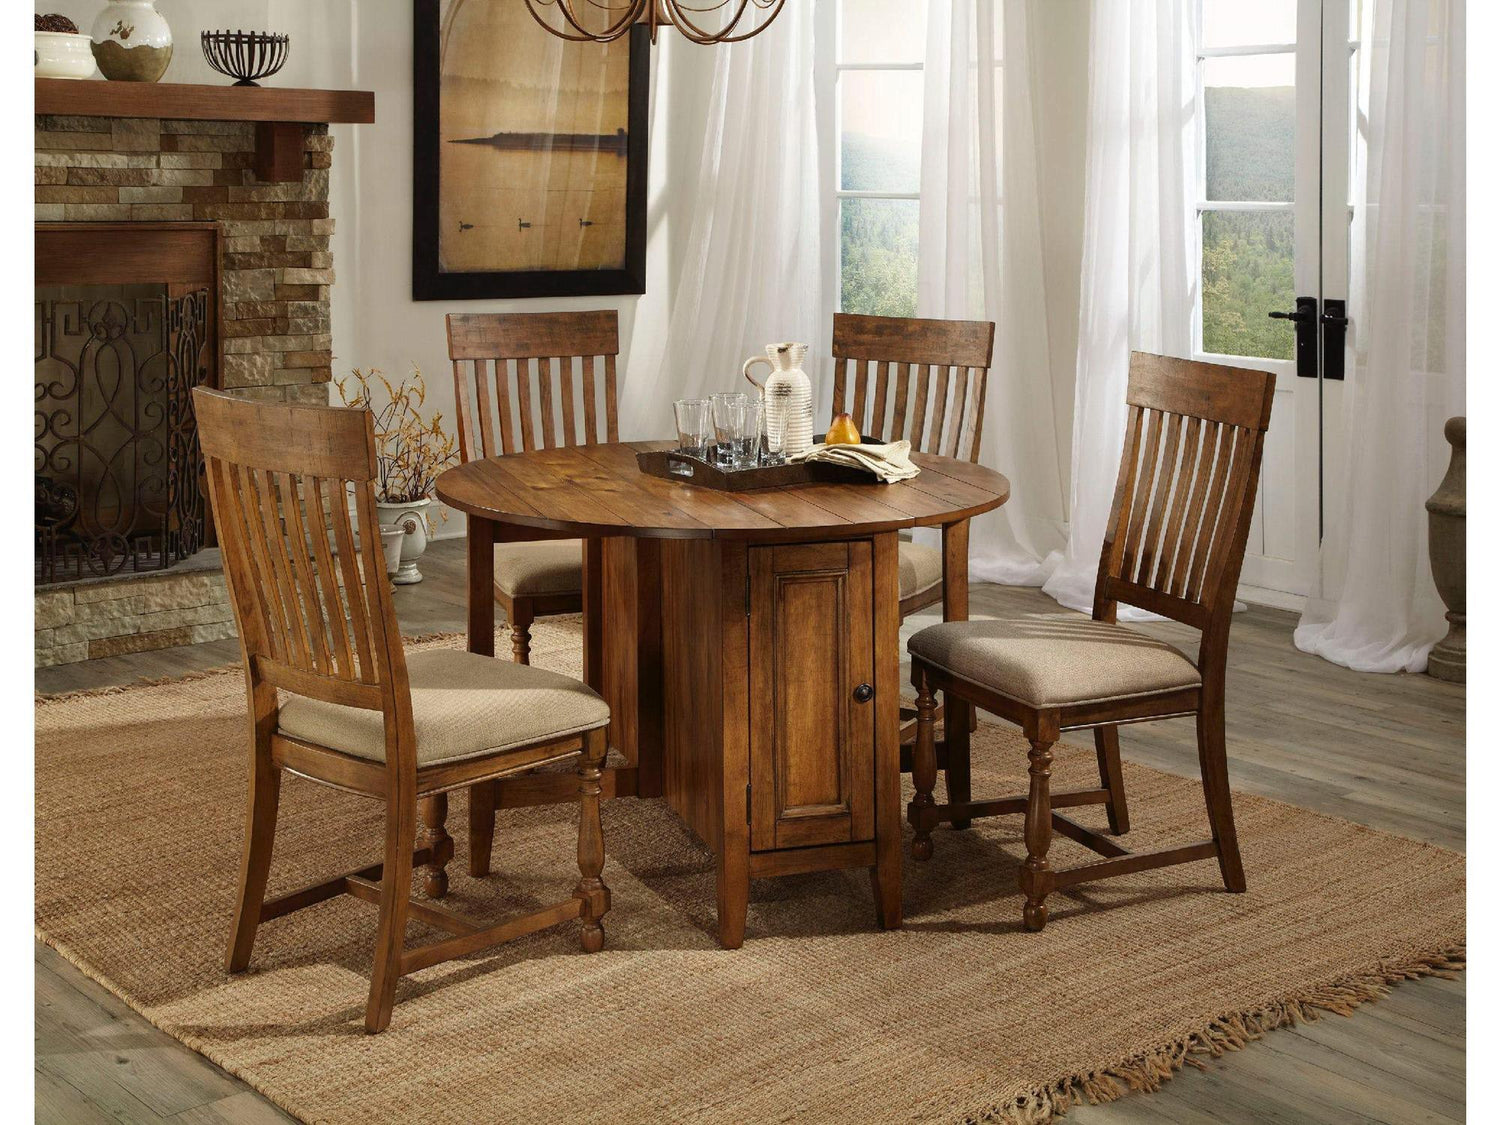 Rustic Mission Drop Leaf Dining Table Dining furniture in